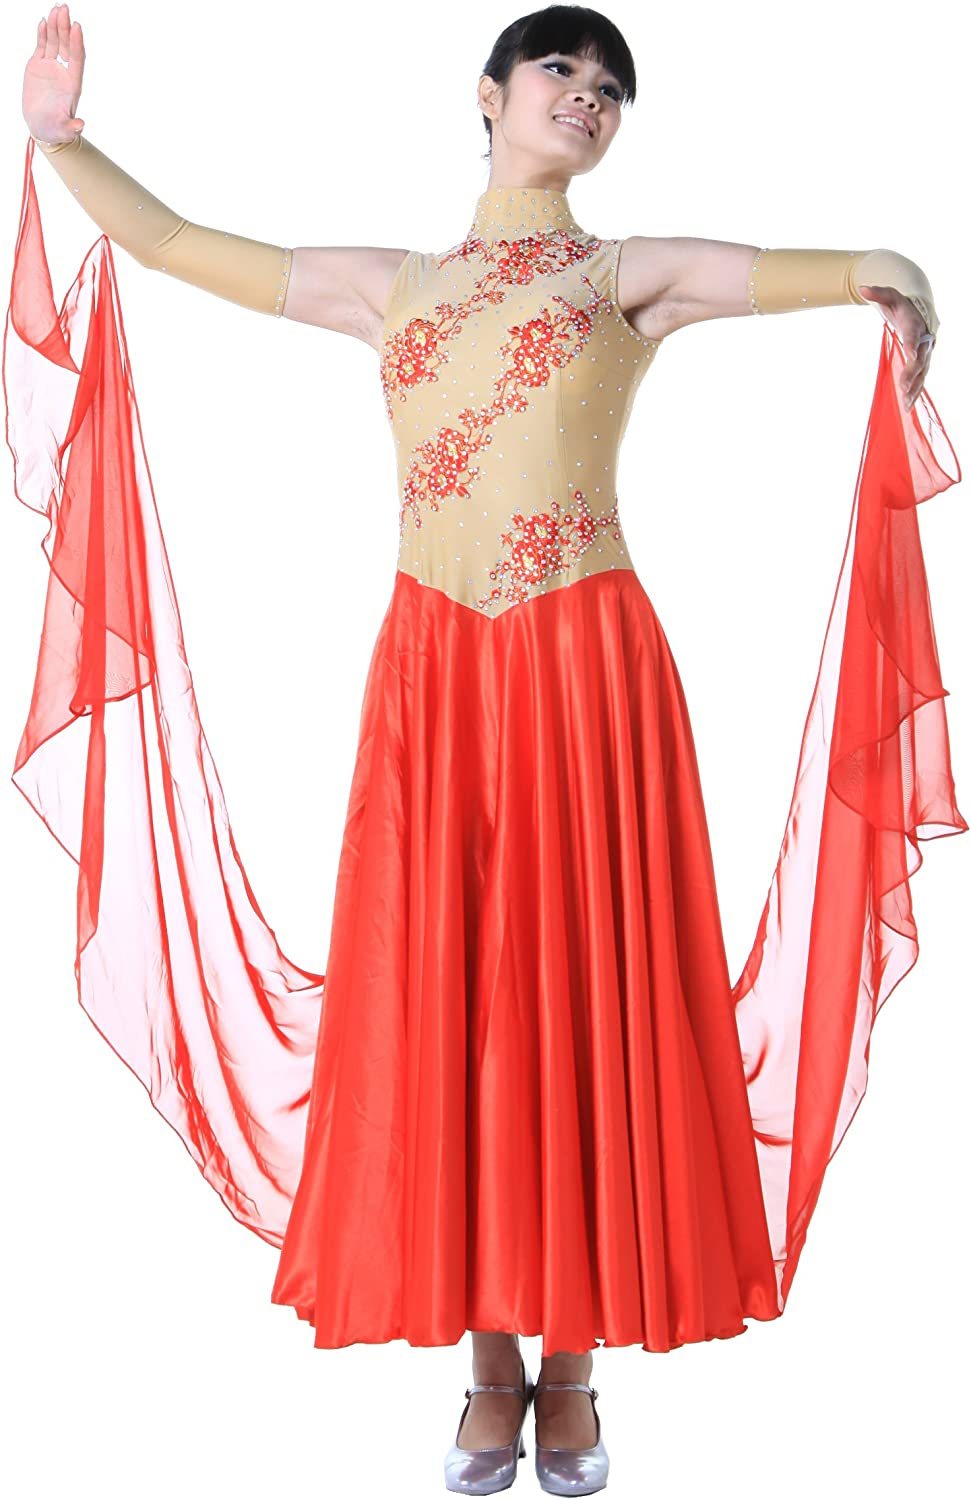 colorfulworld Lady Ballroom Modern Waltz Tango Dance DressOver all dress